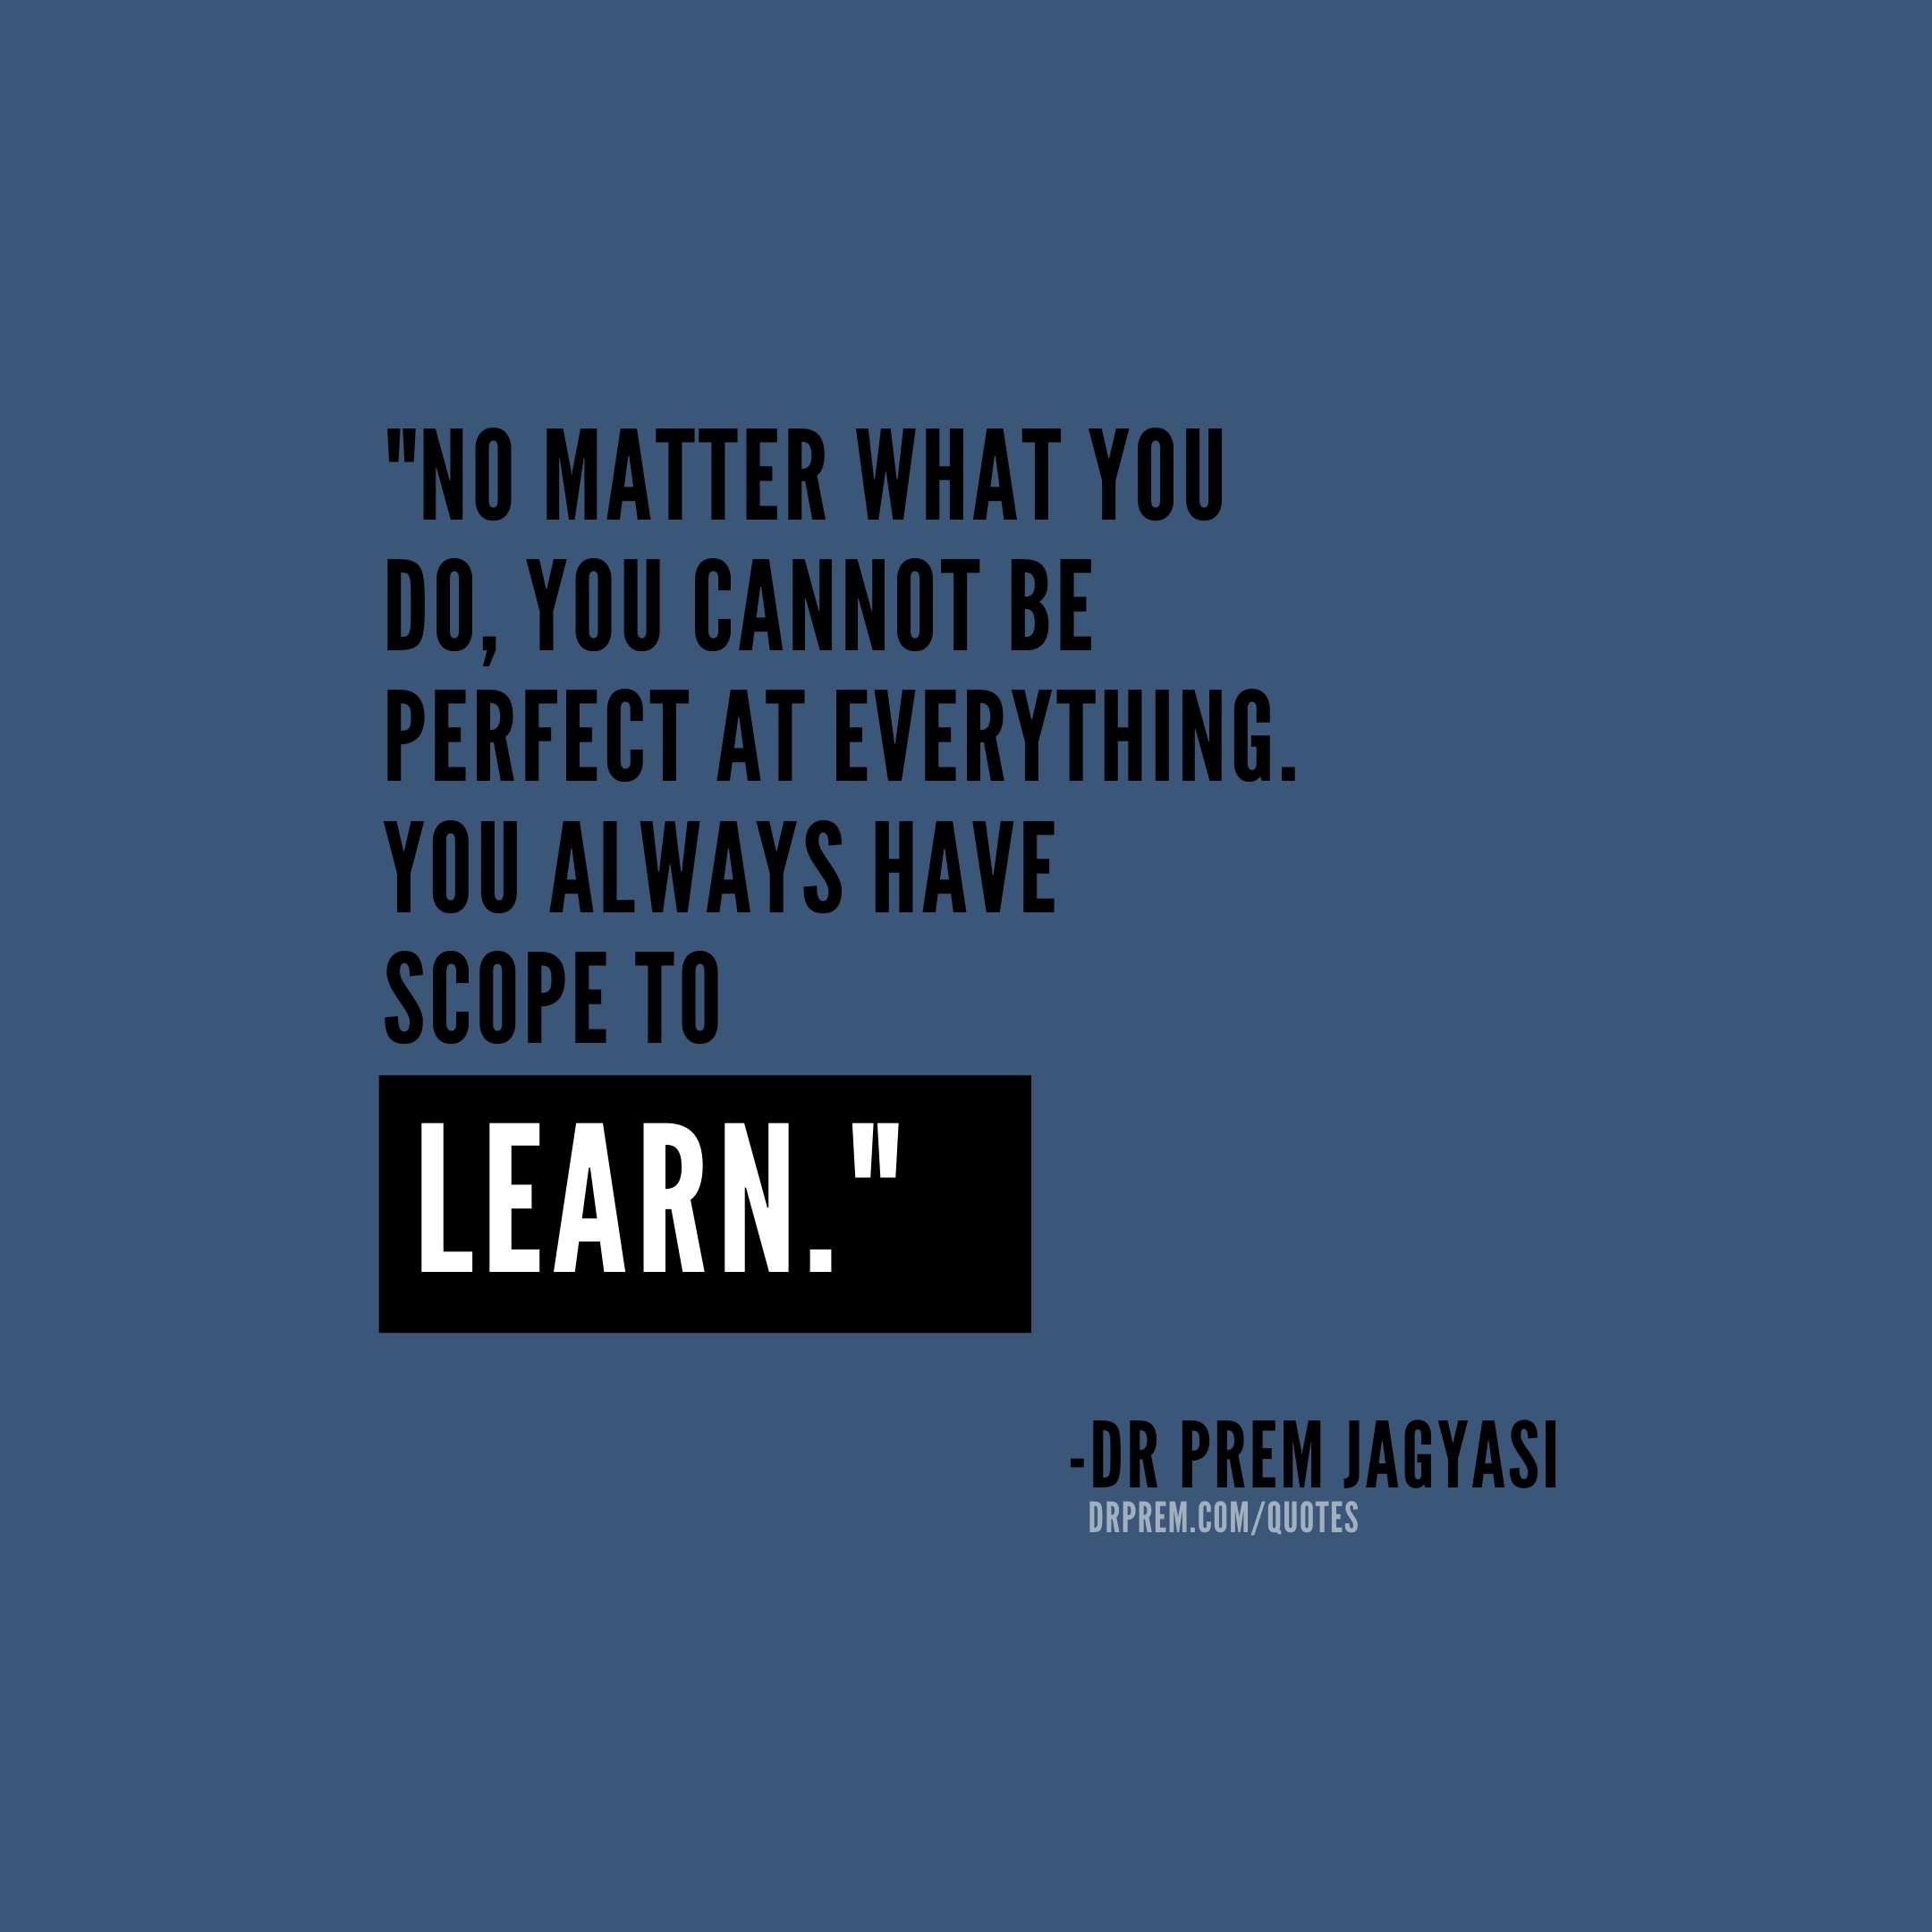 No matter what you do, you cannot be perfect-Dr Prem Jagyasi Quotes